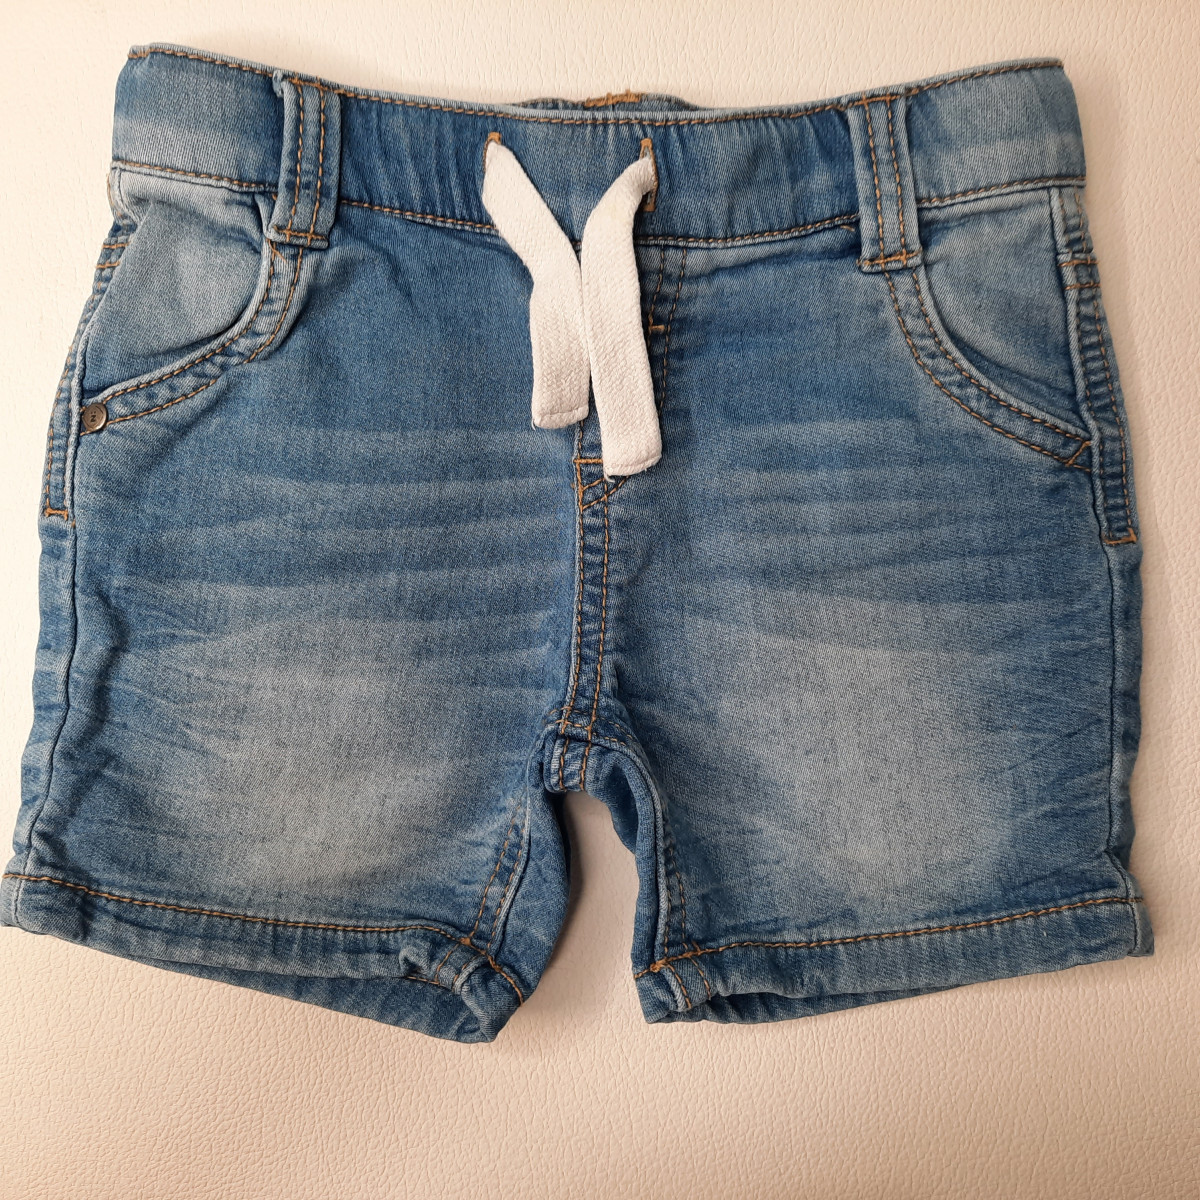 Shorts, Bermudas - photo 15